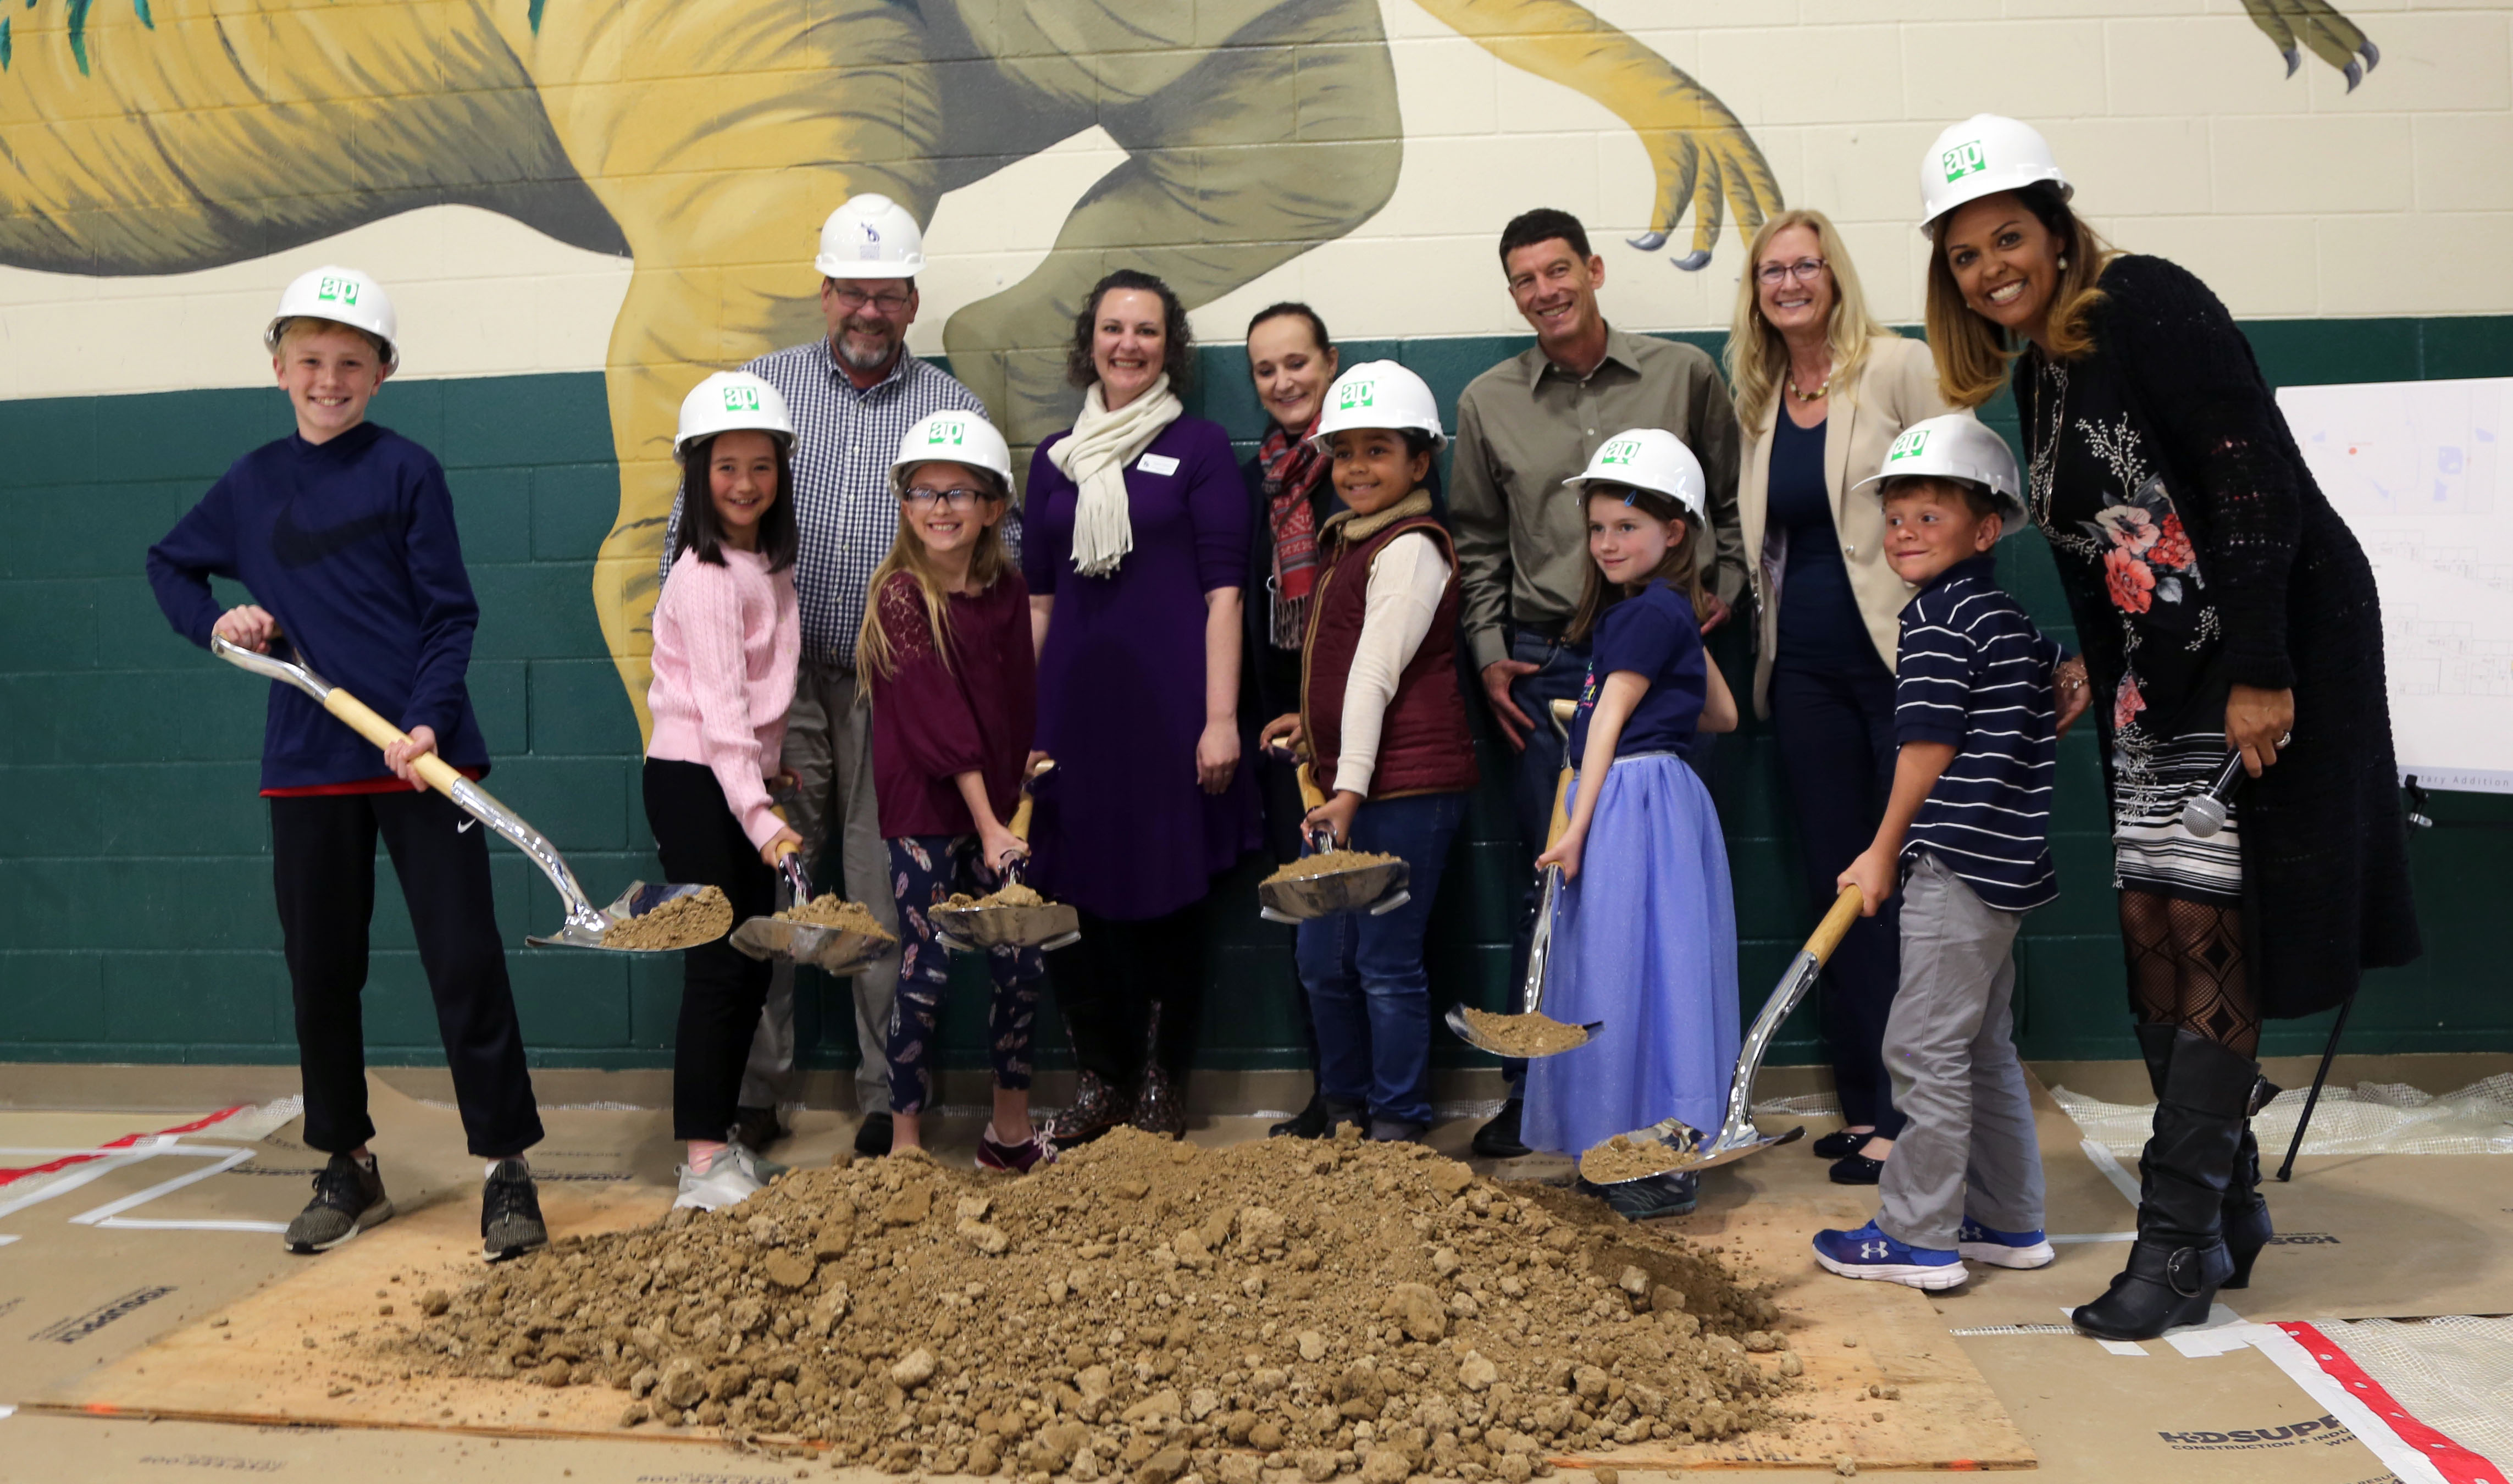 Zach students holding shovels of dirt in the gym as part of the groundbreaking ceremony.